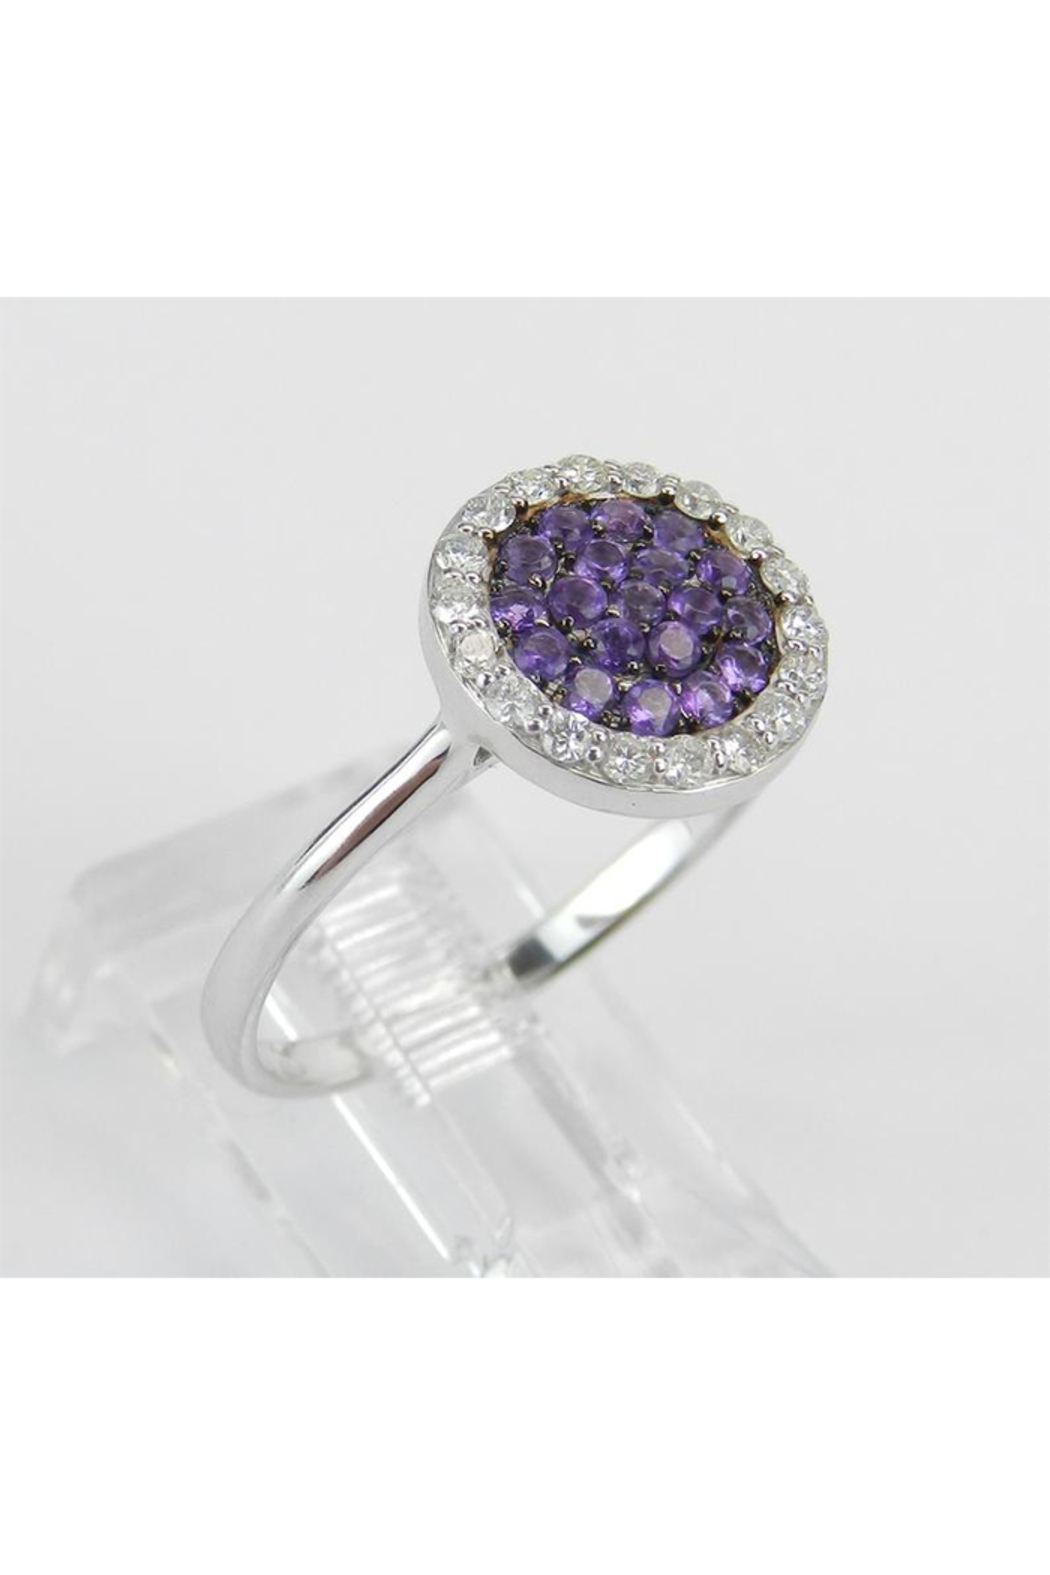 Margolin & Co 14K White Gold Diamond and Amethyst Cluster Promise Cocktail Ring Size 7.25 - Front Full Image